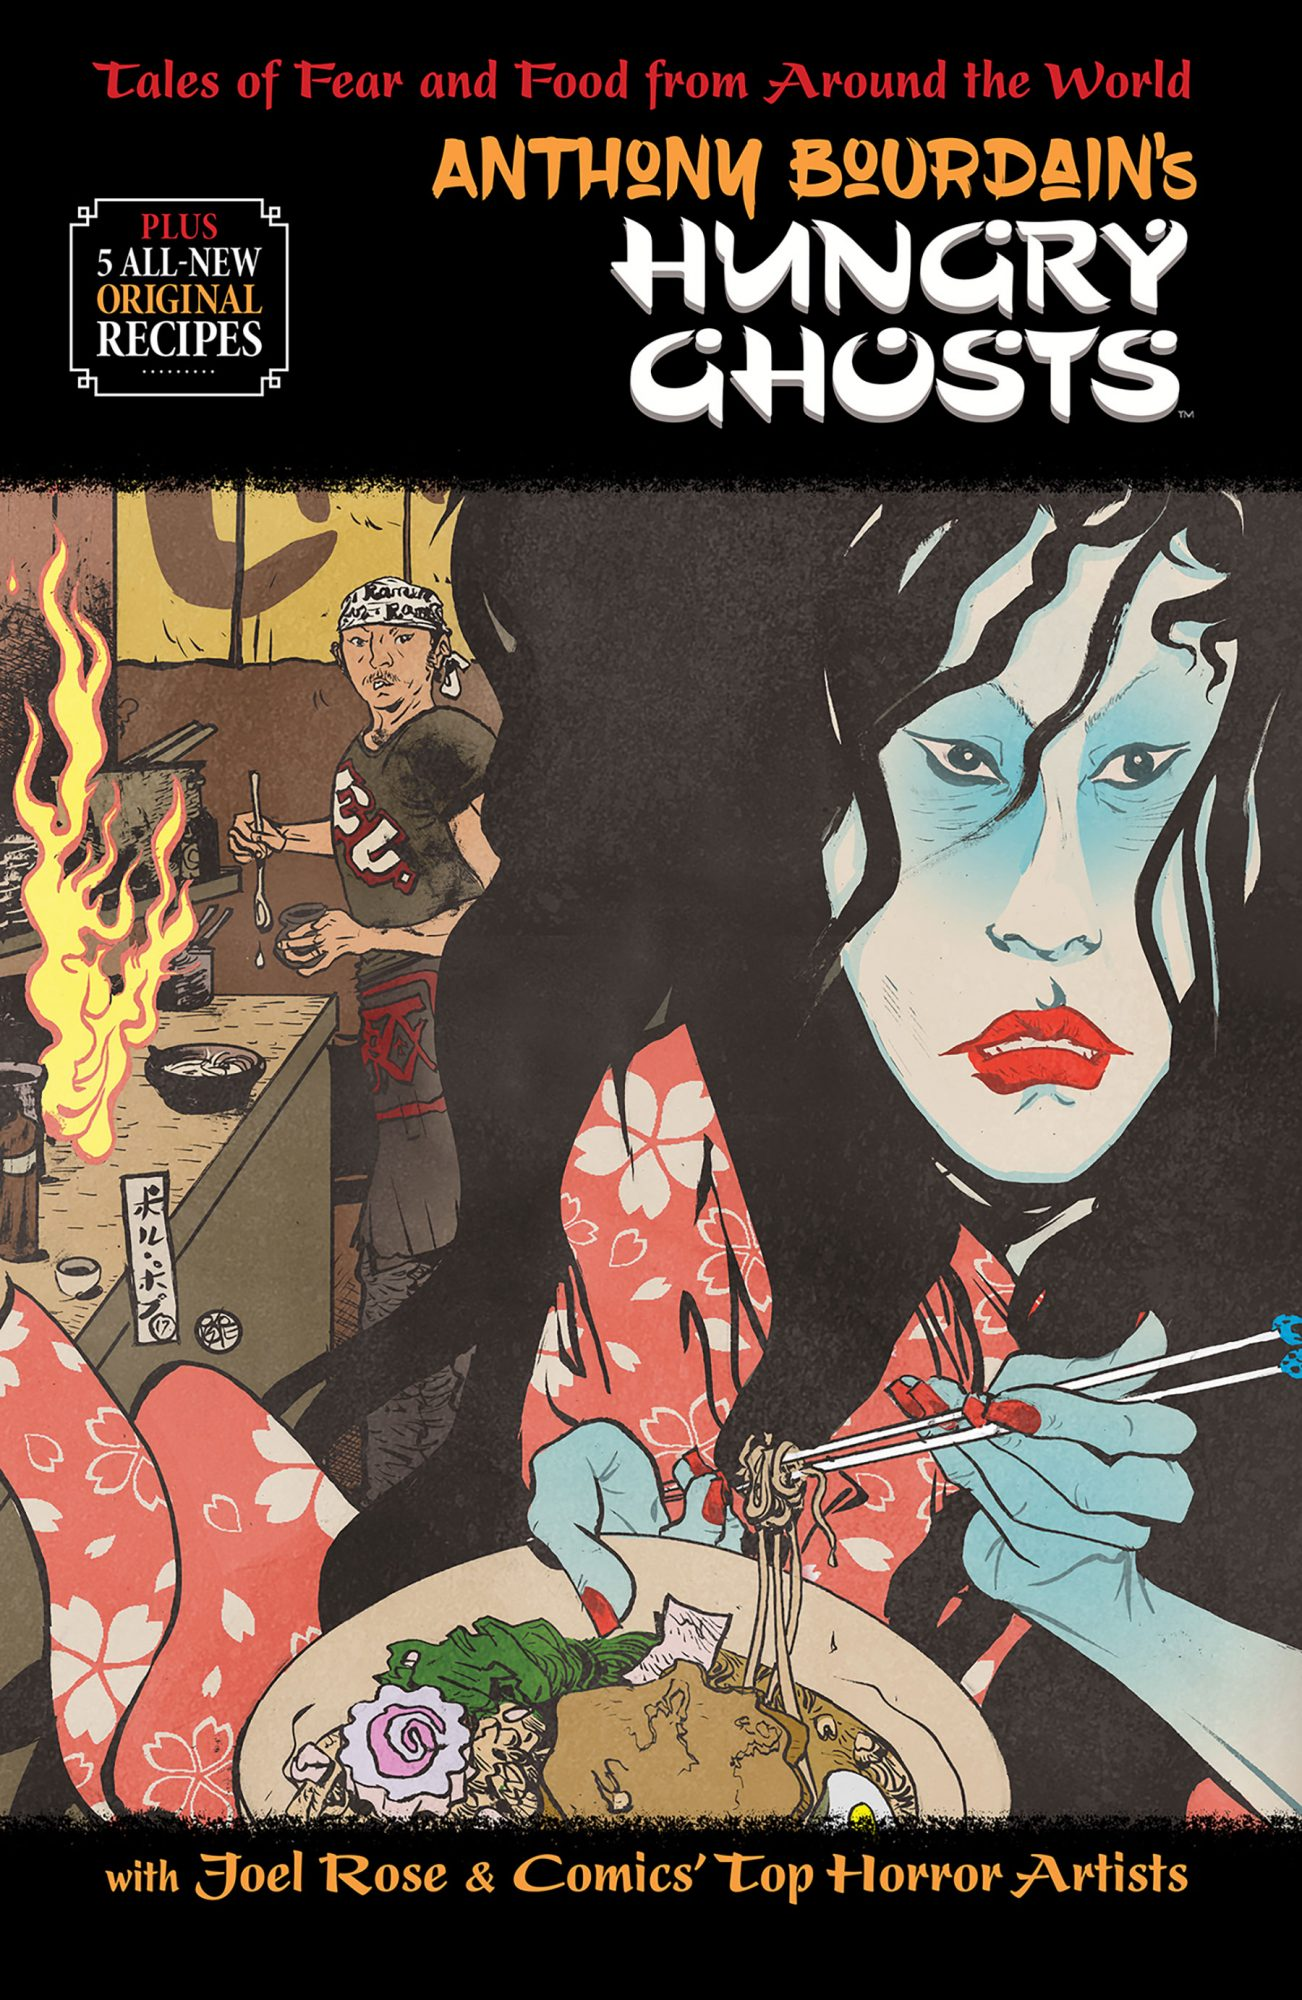 HUNGRY GHOSTS2018ANTHONY BOURDAIN